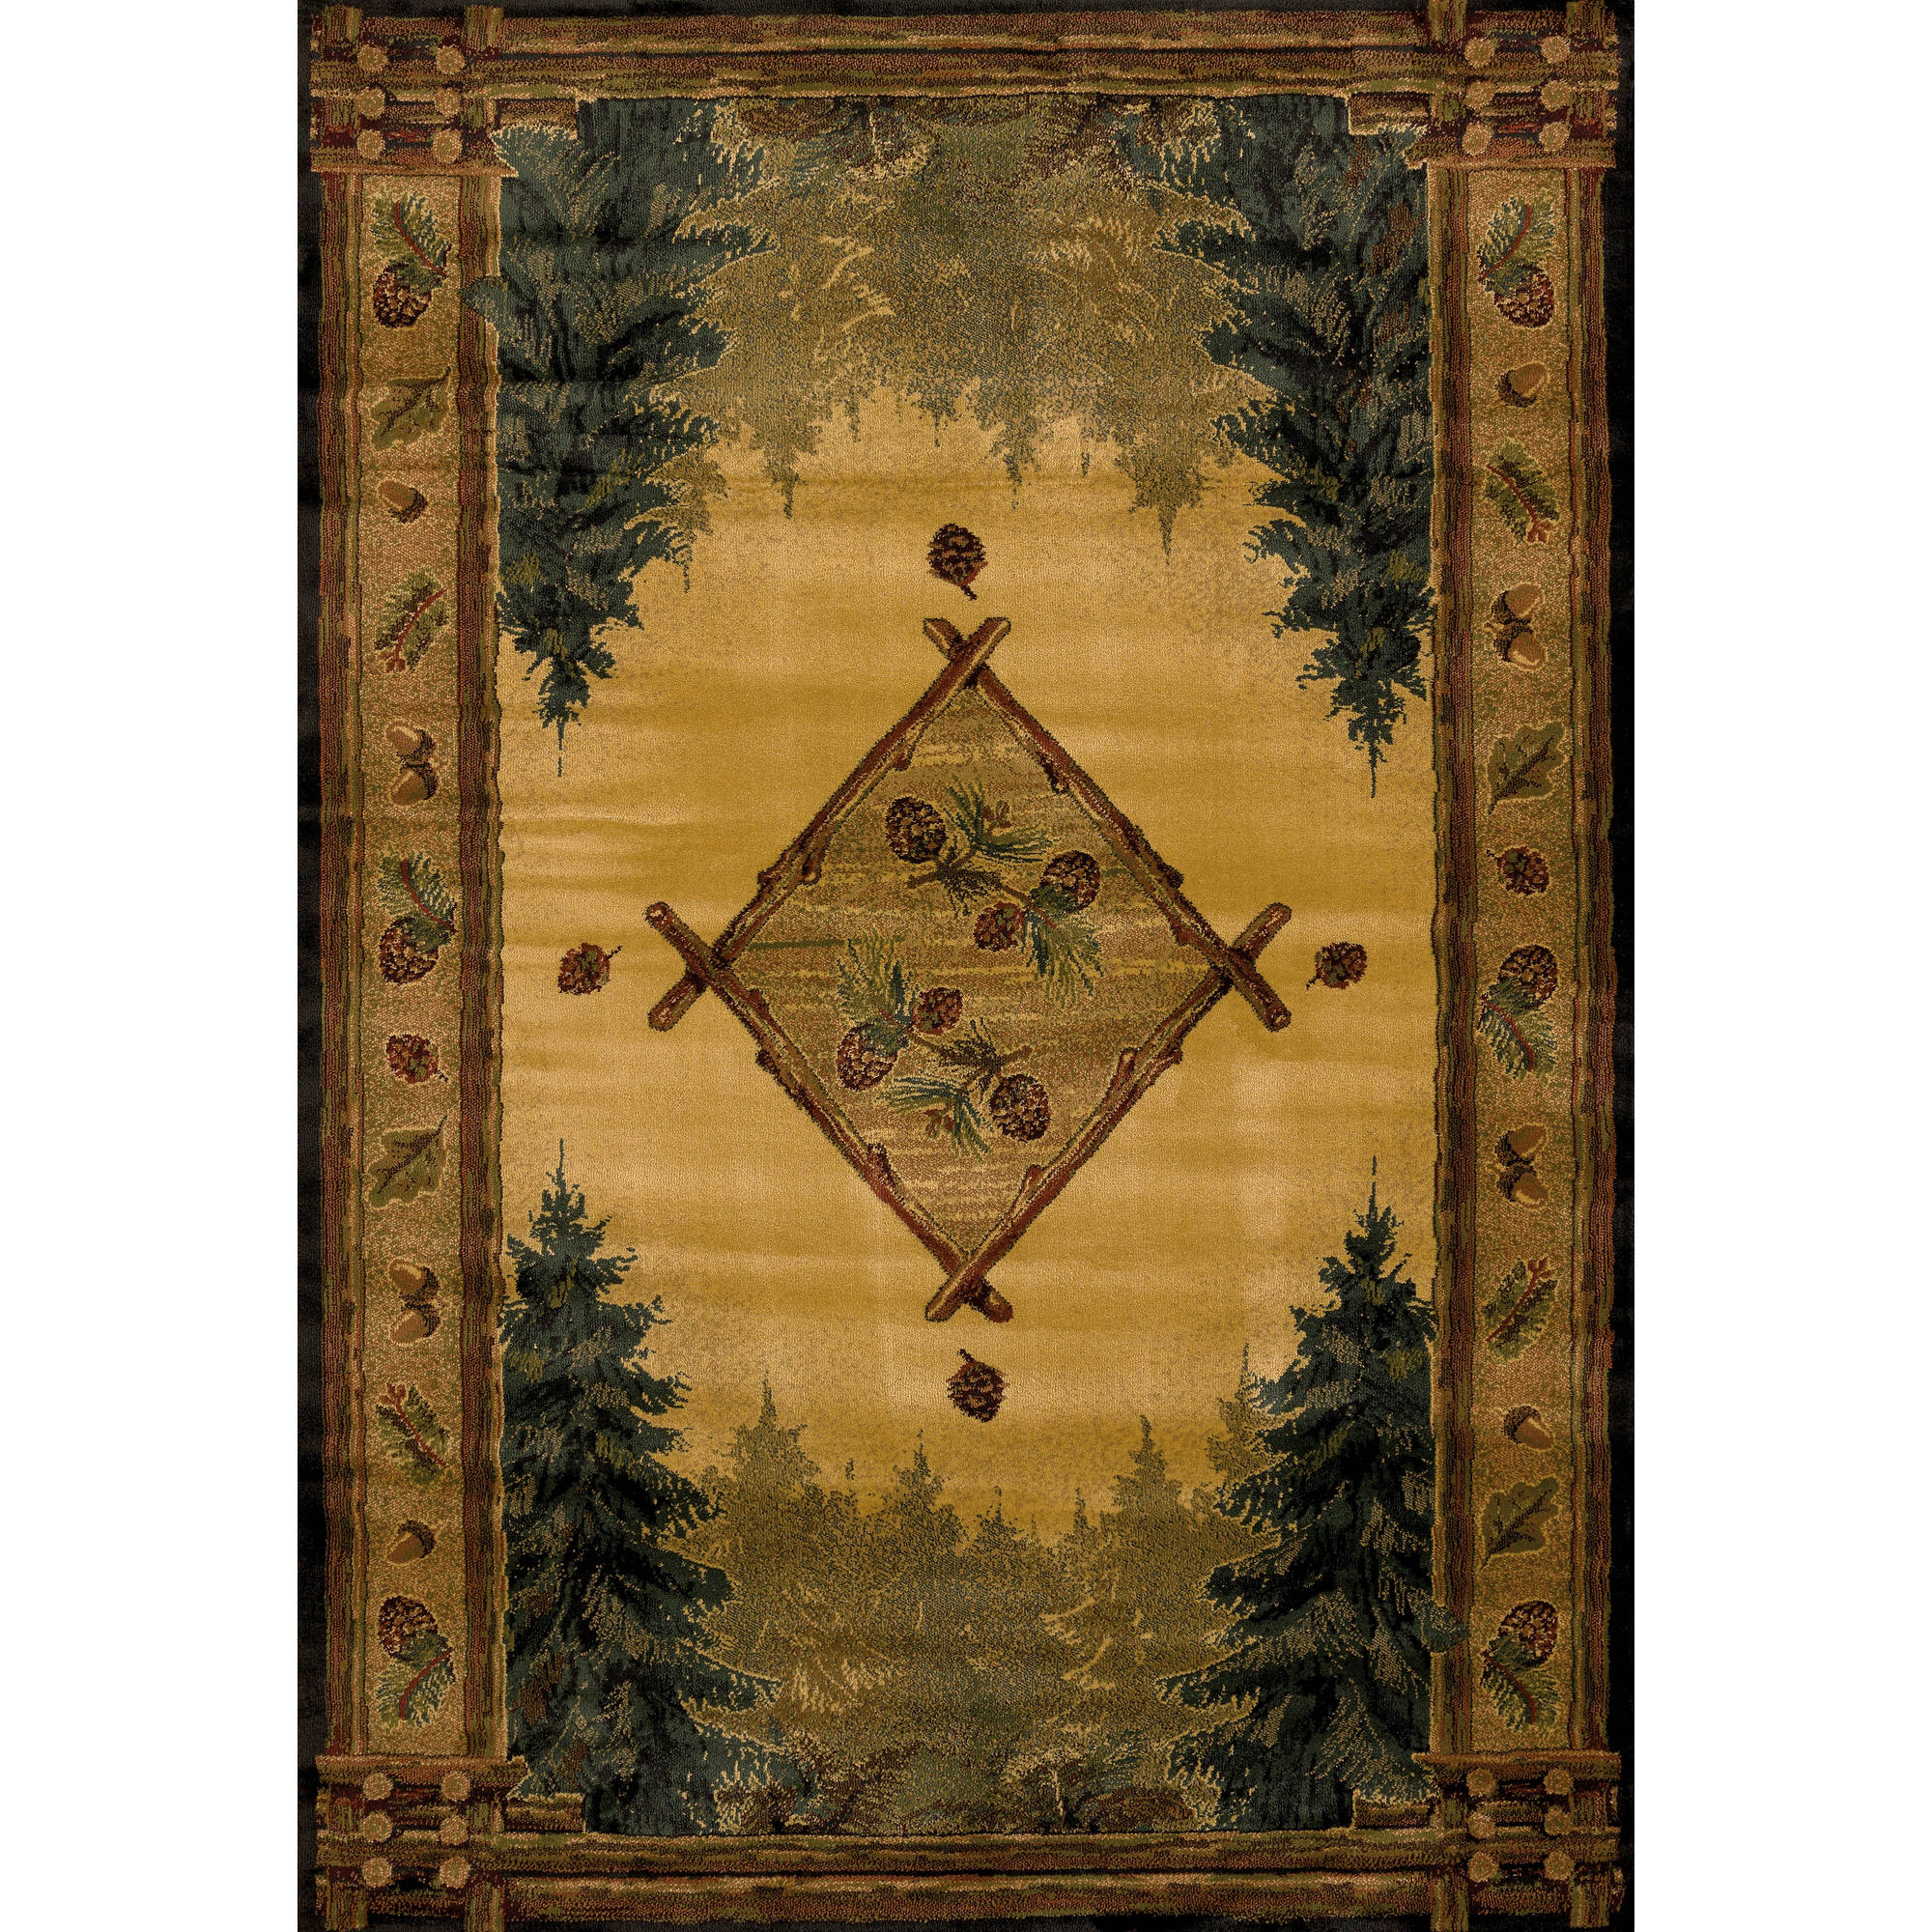 United Weavers Big Timber Pine Forest Lodge Woven Polypropylene Area Rug or Runner